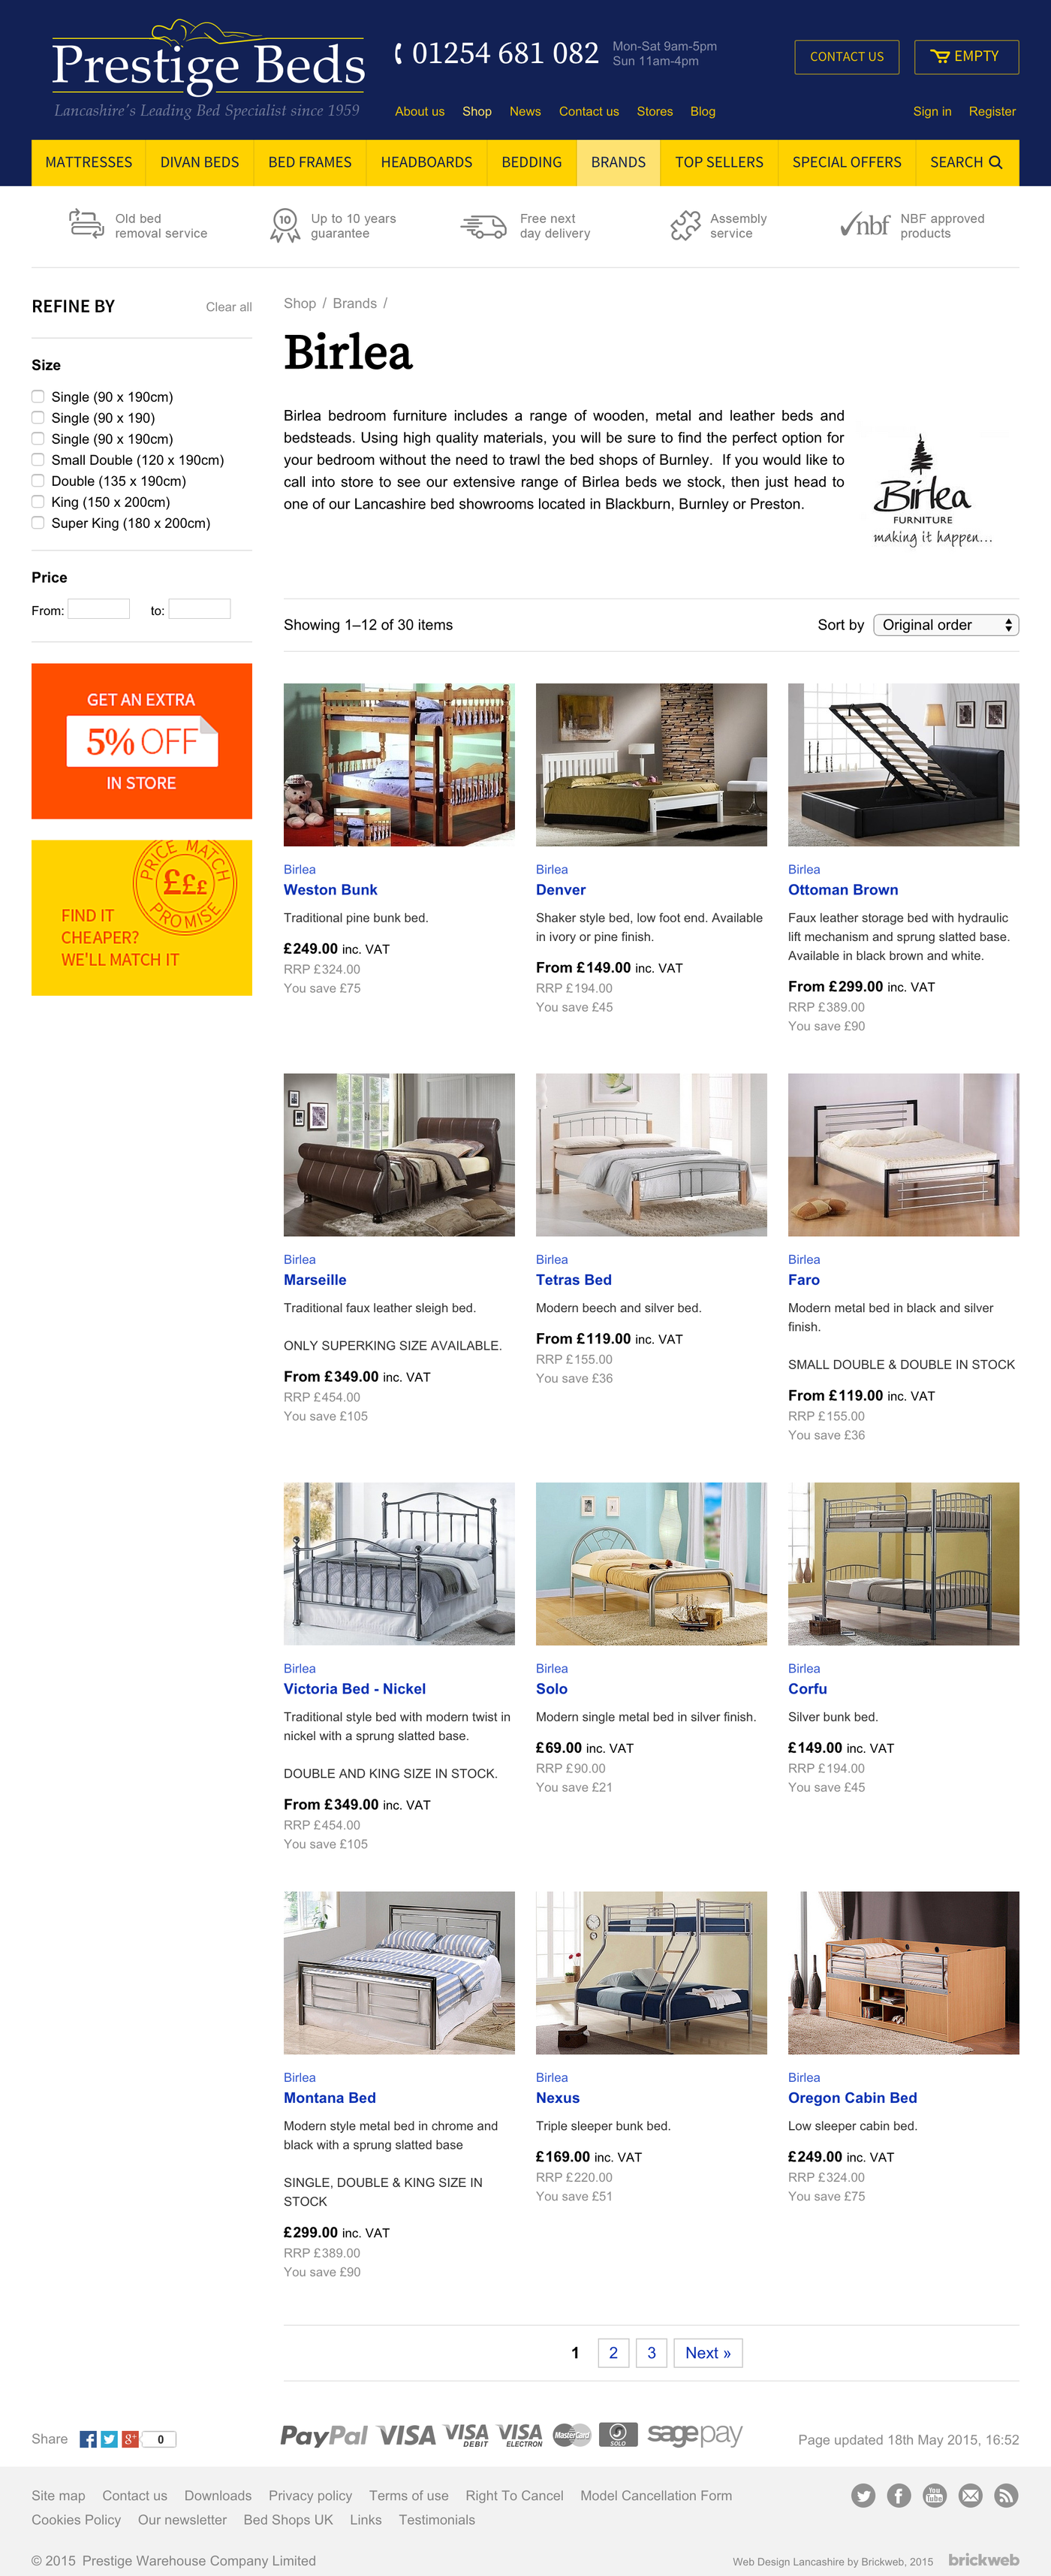 Prestige Beds Products page